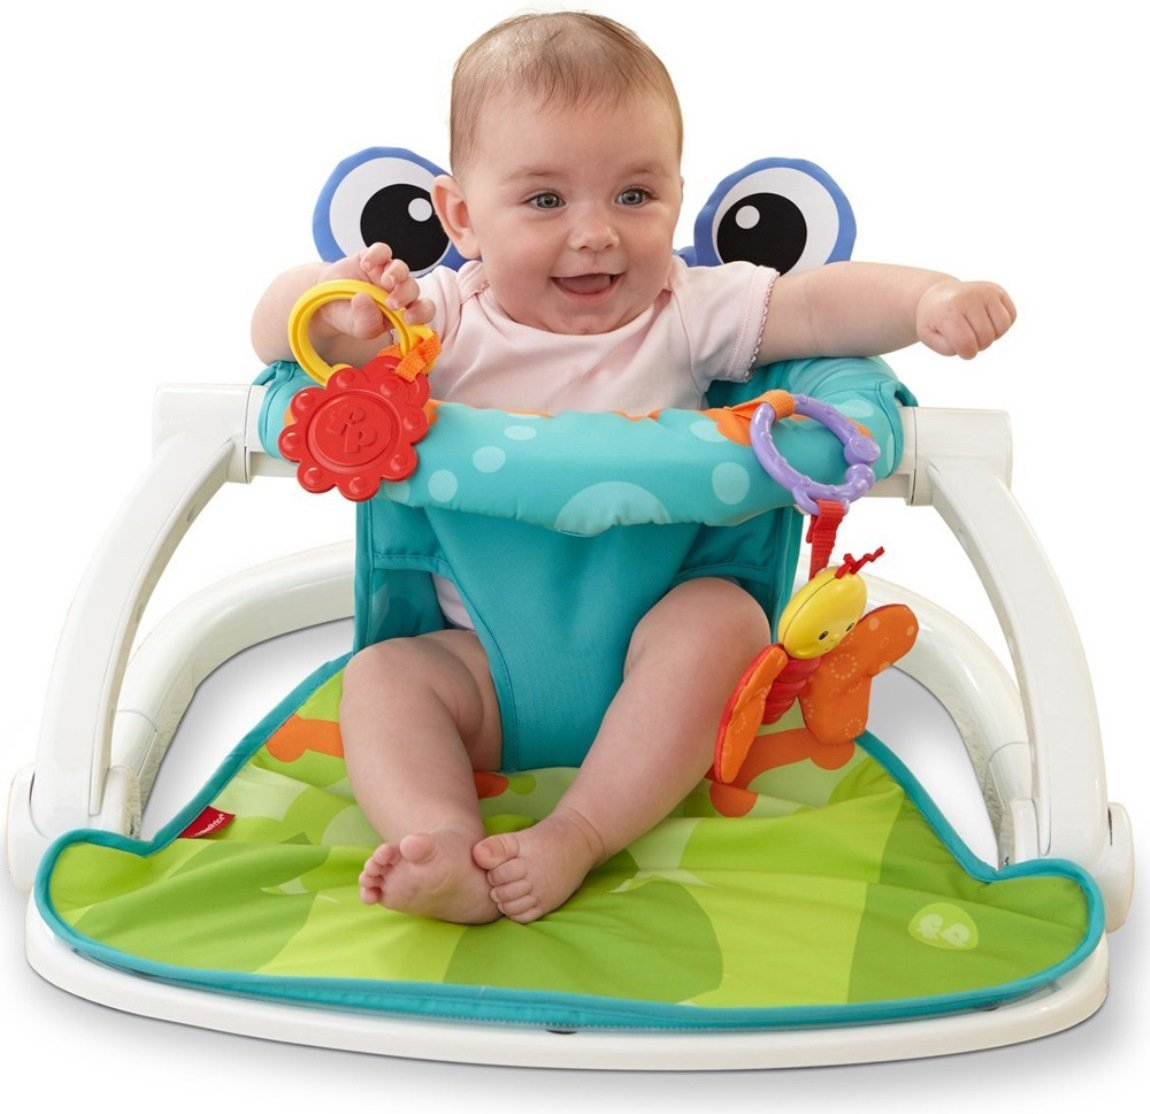 Bon Fisher Price Sit Me Up Floor Seat   Walmart.com